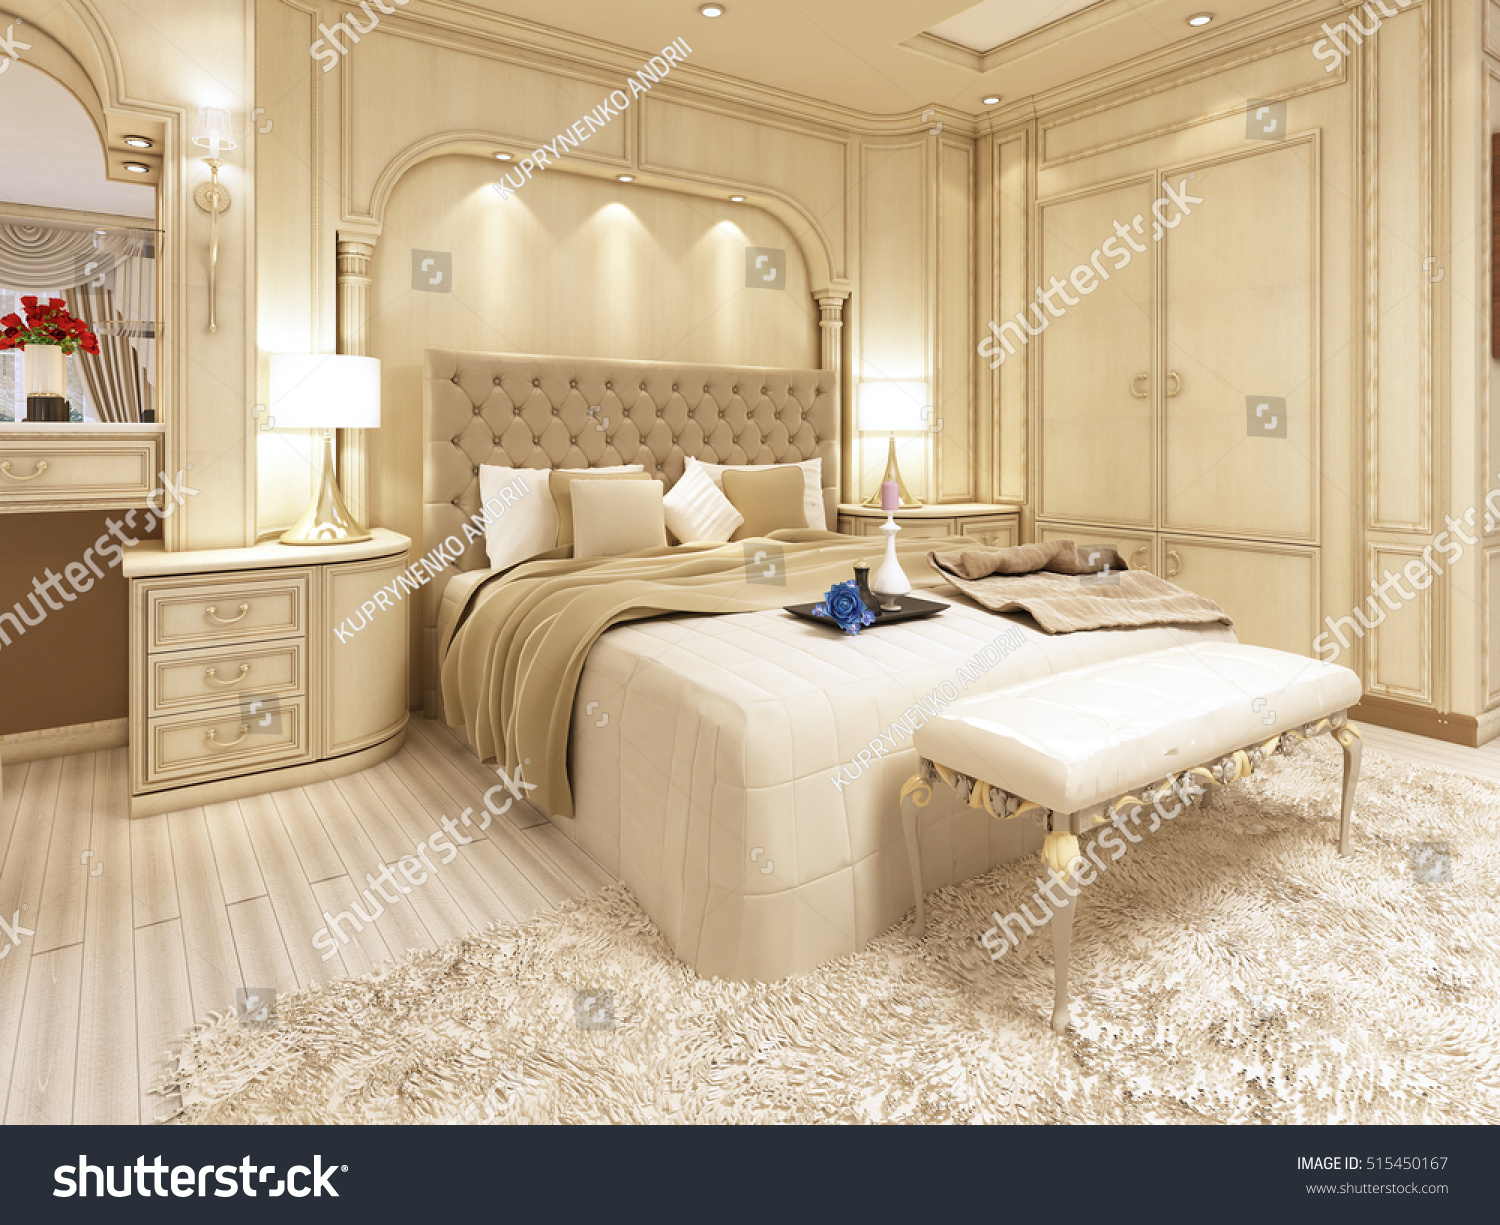 Luxury Bed Large Neoclassical Bedroom Decorative Stock Illustration ...